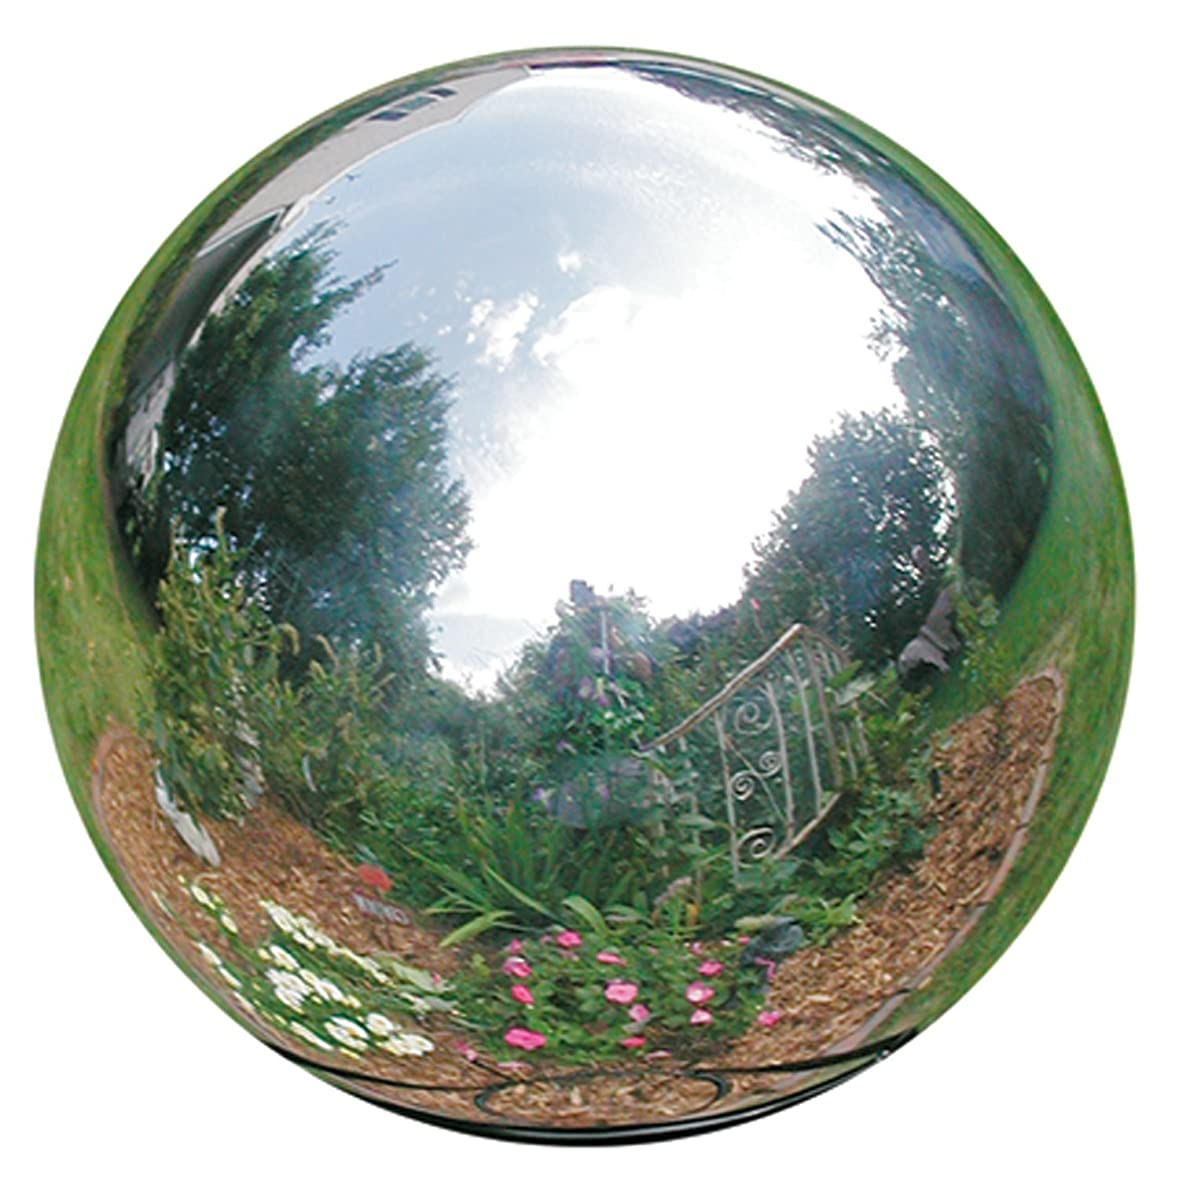 Rome 704-S Silver Stainless Steel Gazing Globe, Polished Stainless Steel, 4-Inch Diameter